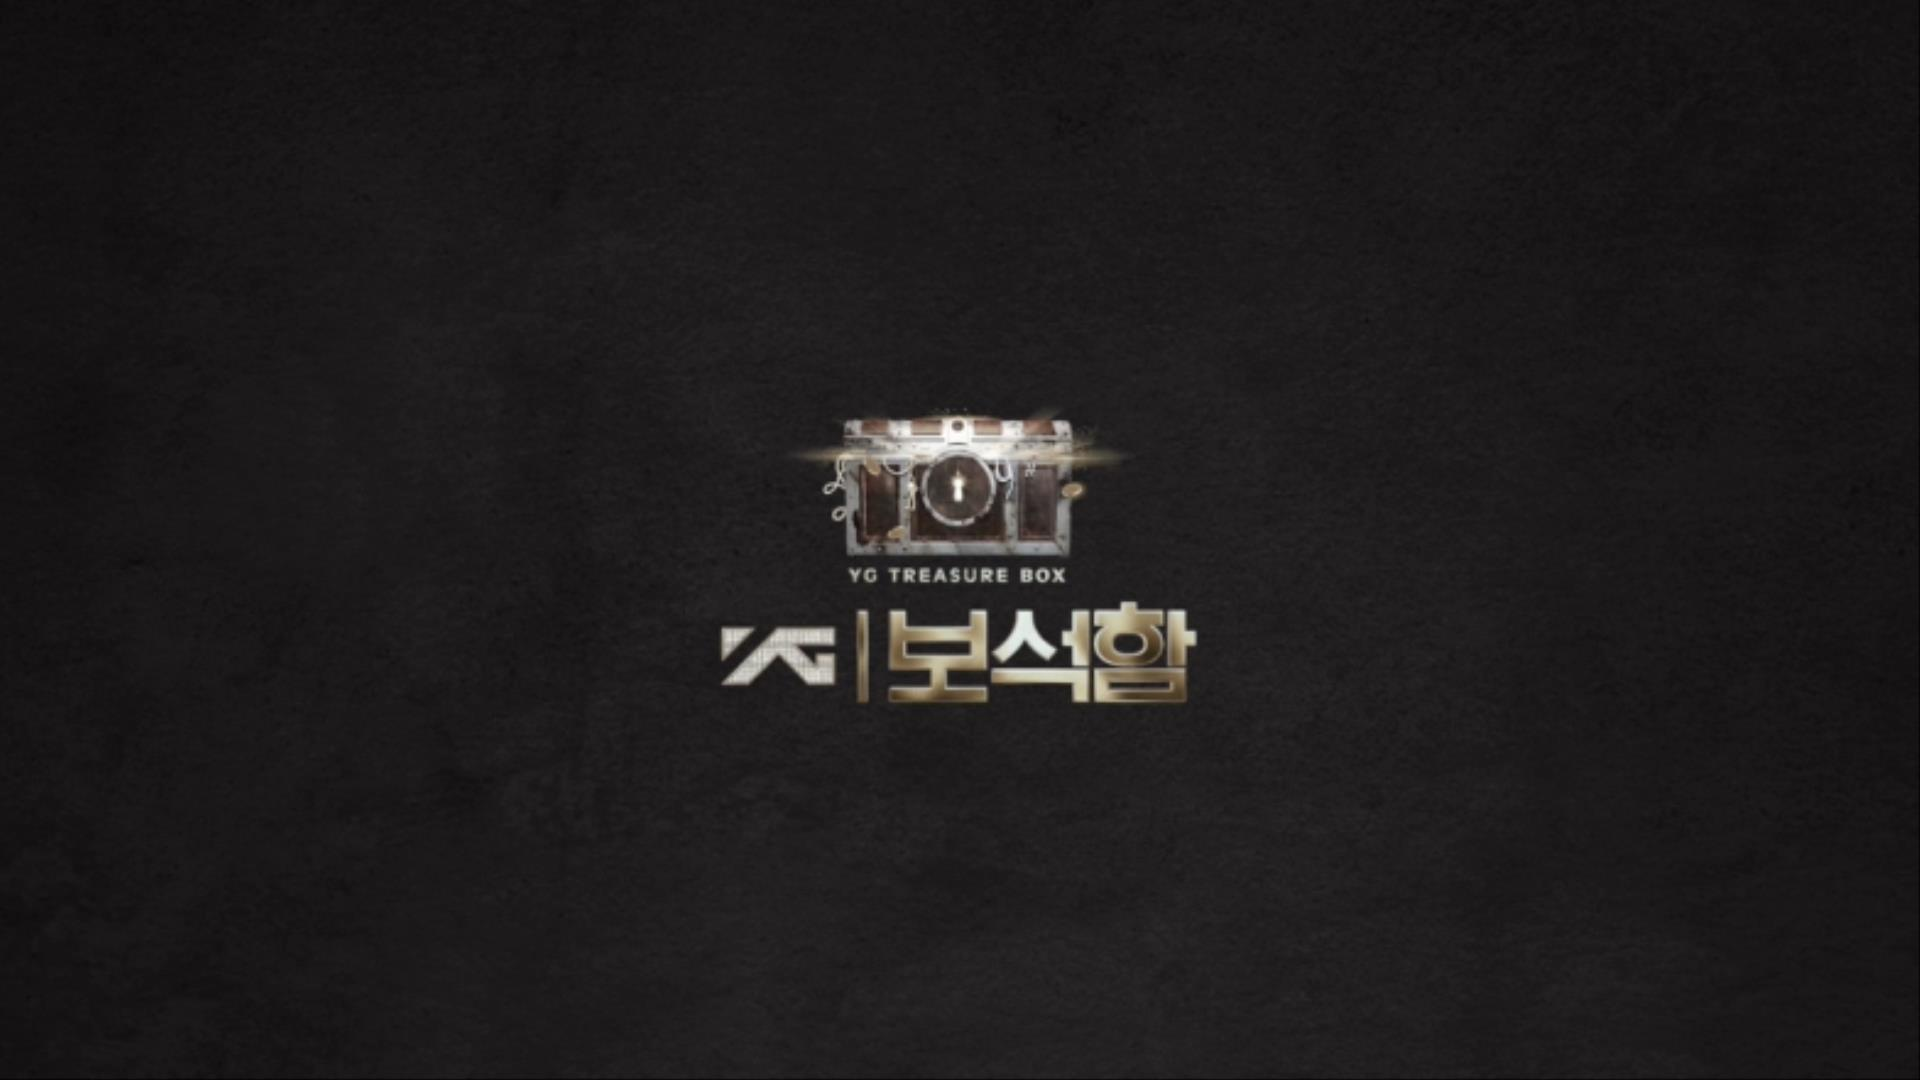 YG보석함 ㅣ THANK YOU, TREASURE MAKER